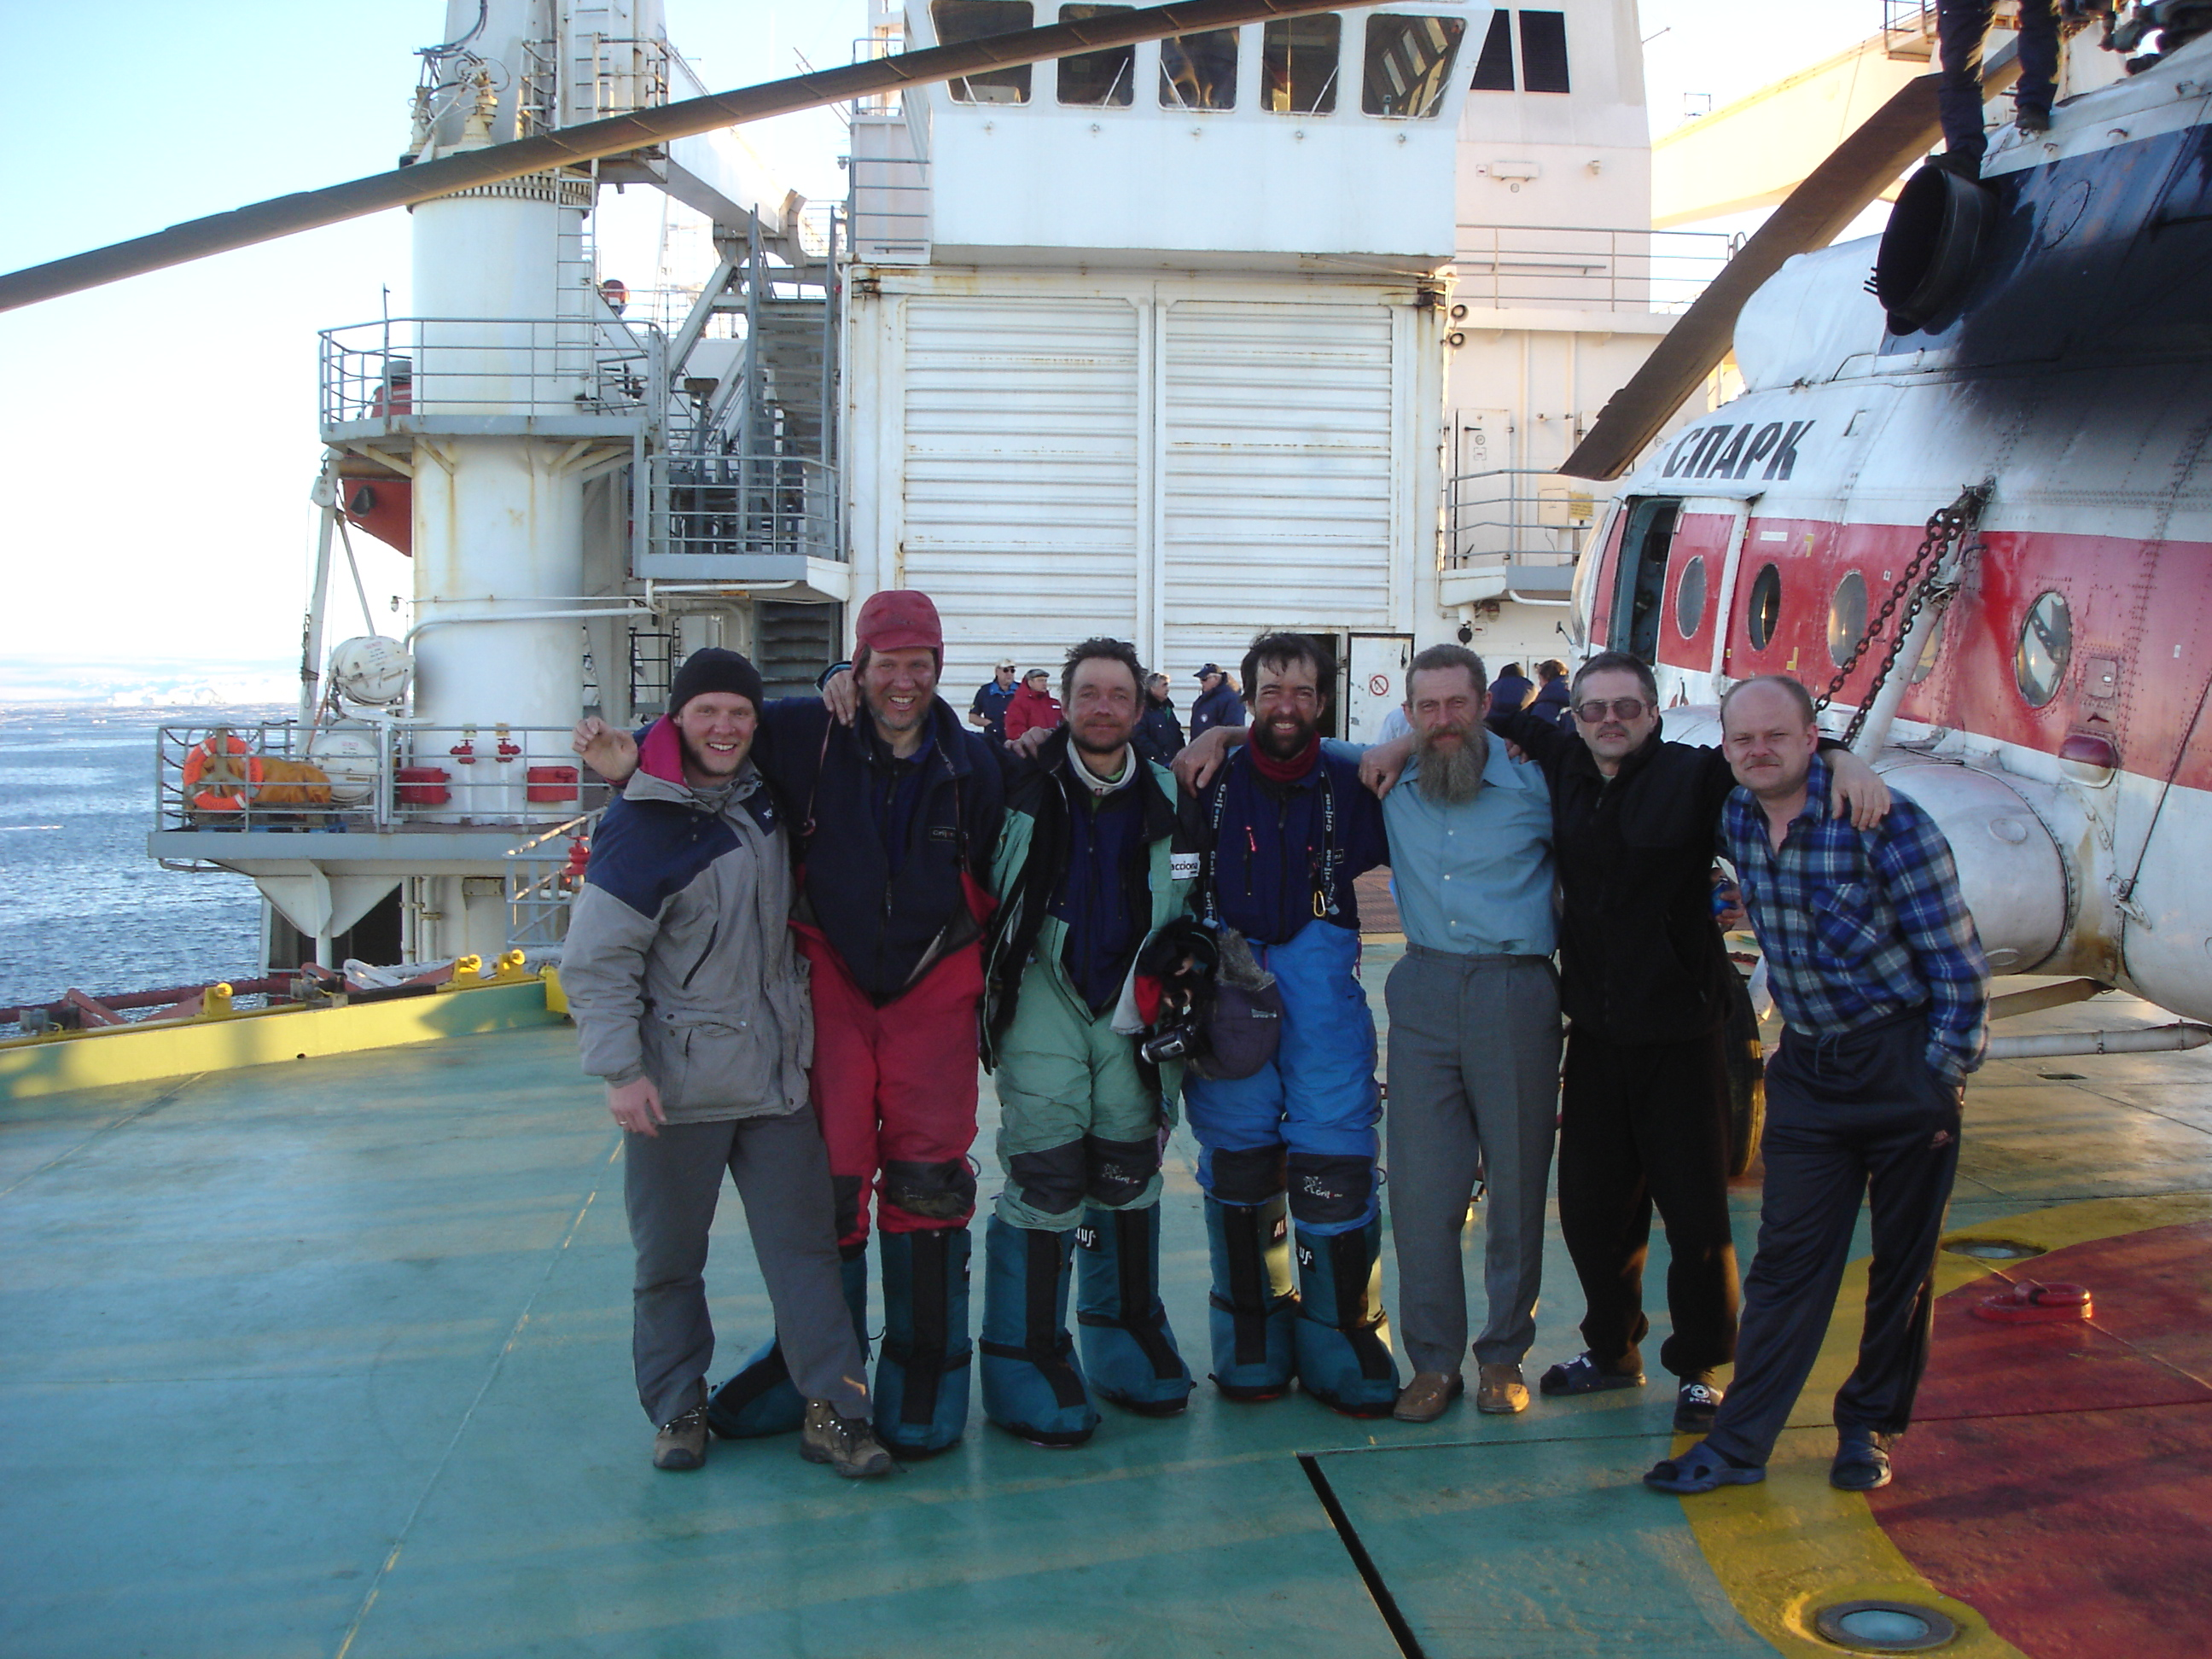 9 On board Akademik fedorov with Vostok crew.